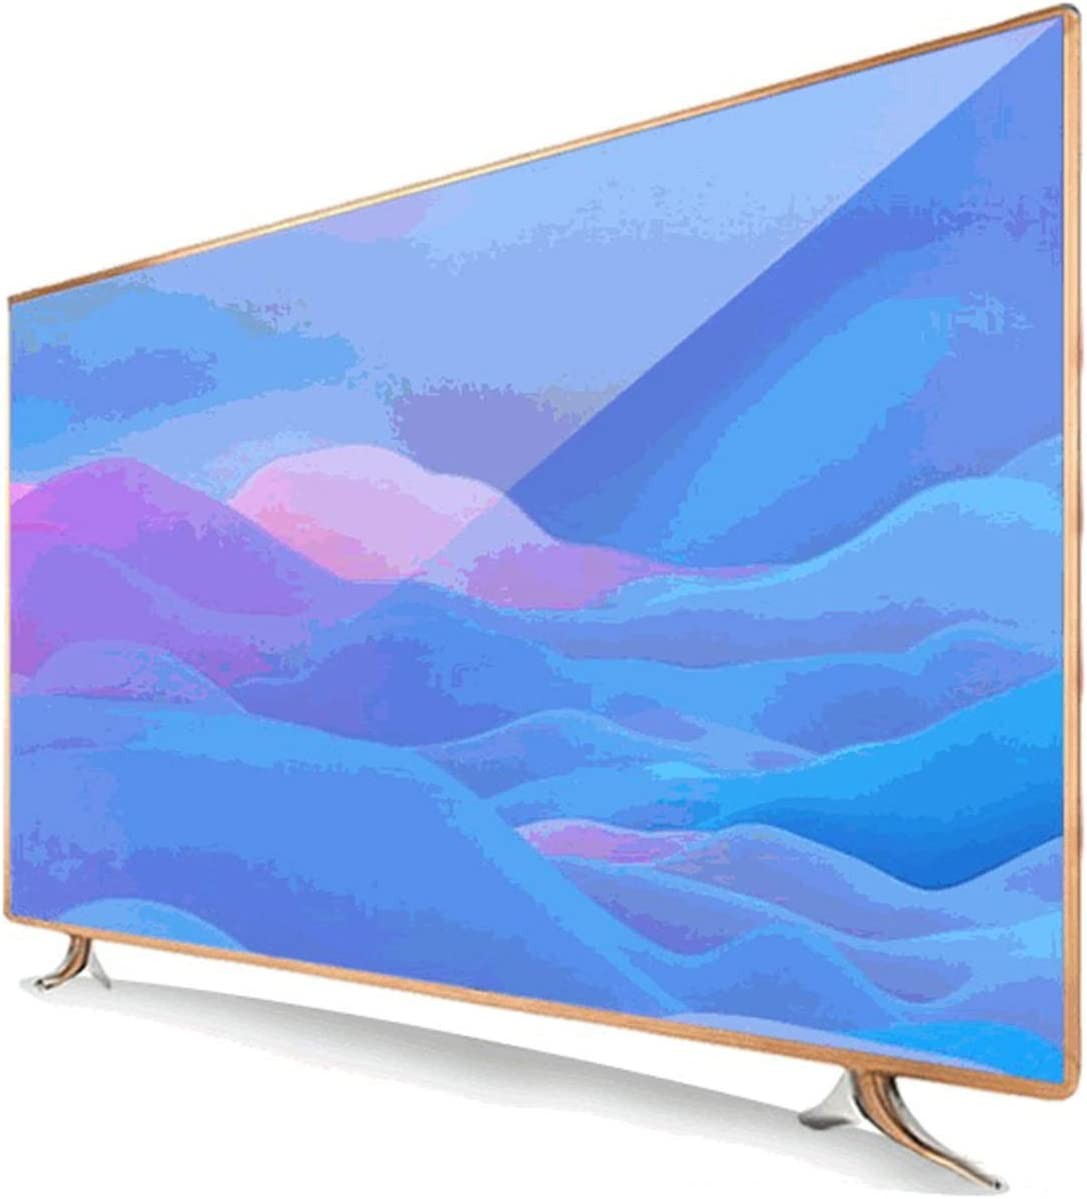 Household Products 4K Max 62% OFF Complete Free Shipping HD WiFi LCD TV Smart Wall-Mounted Network